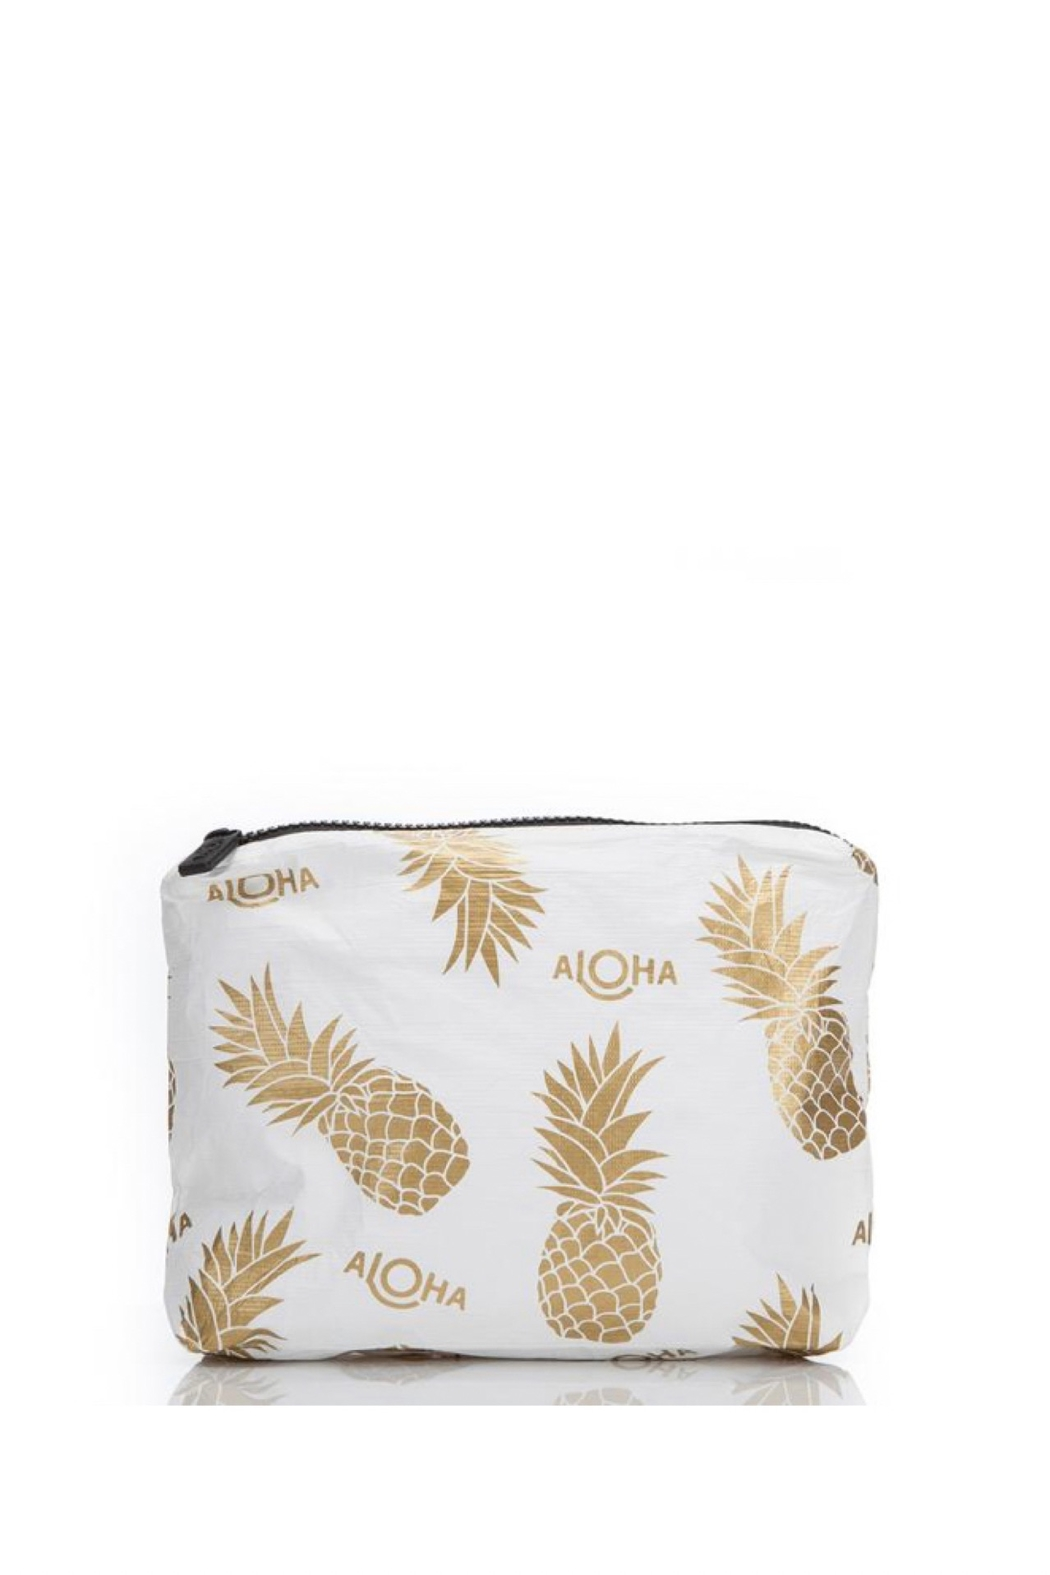 Aloha Collection Small White Pineapple Fields Pouch - Main Image